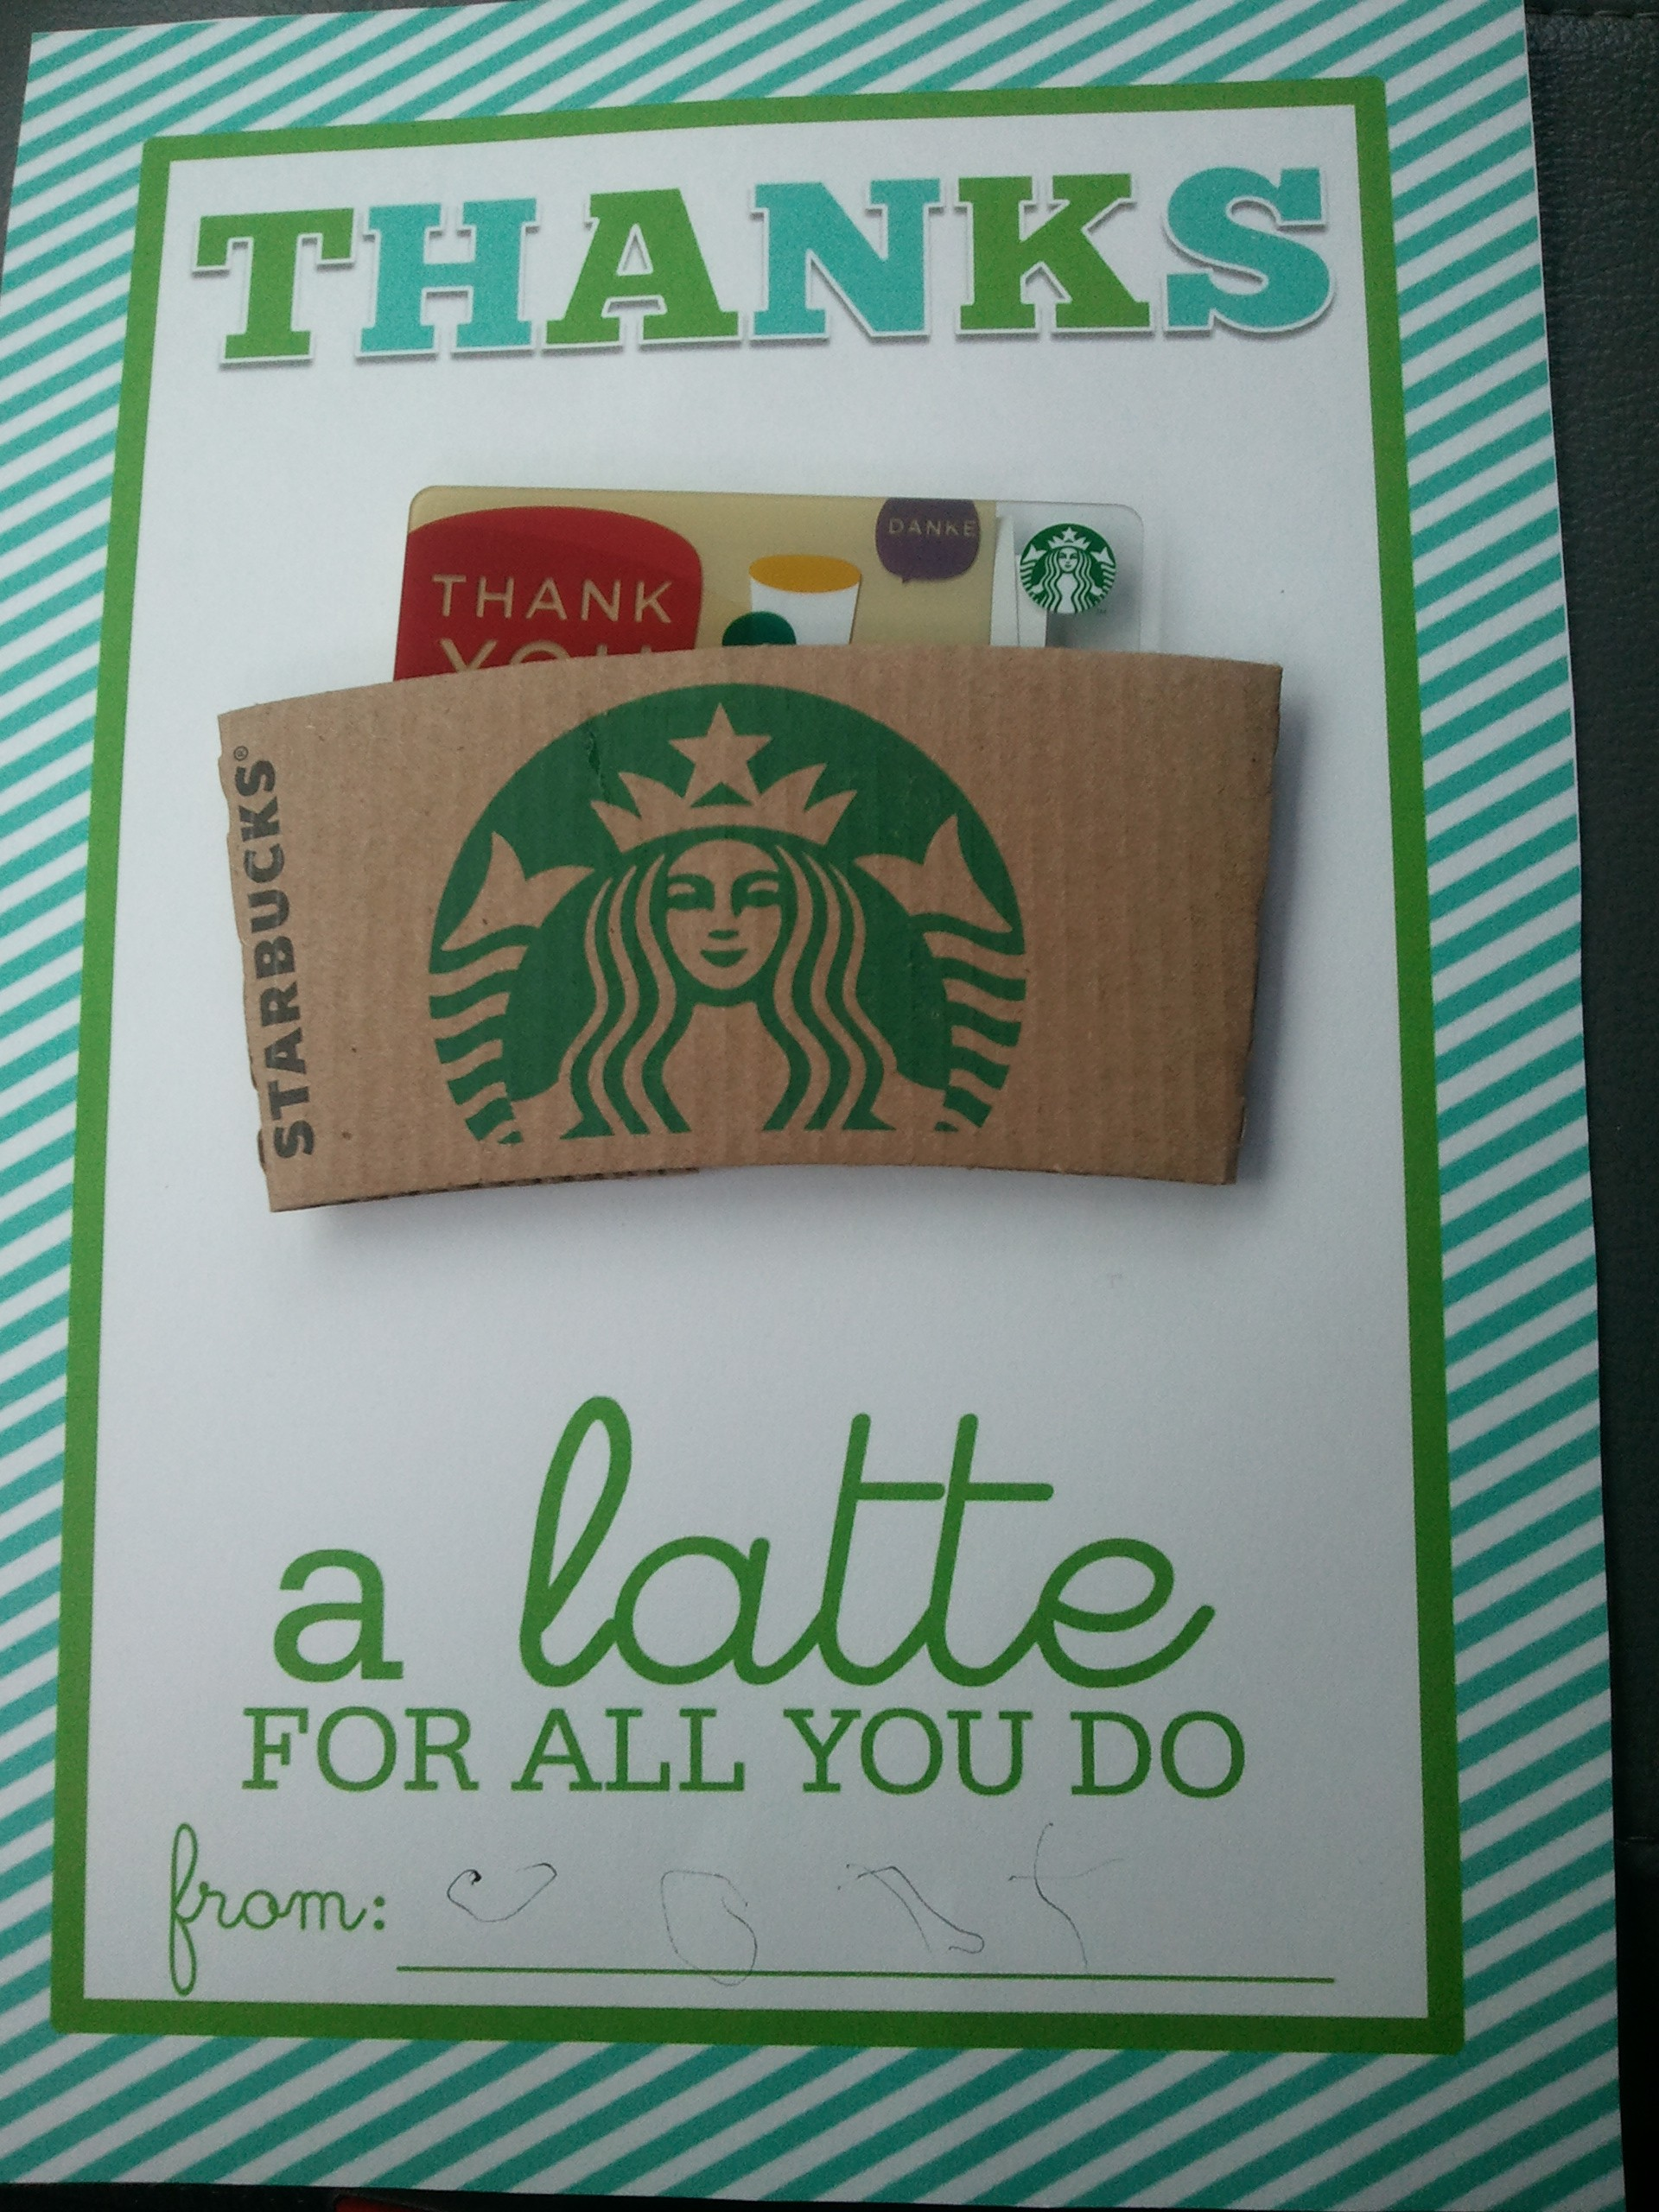 photo regarding Thanks a Latte Christmas Printable identified as Because of a latte Printable - Motherhood Company